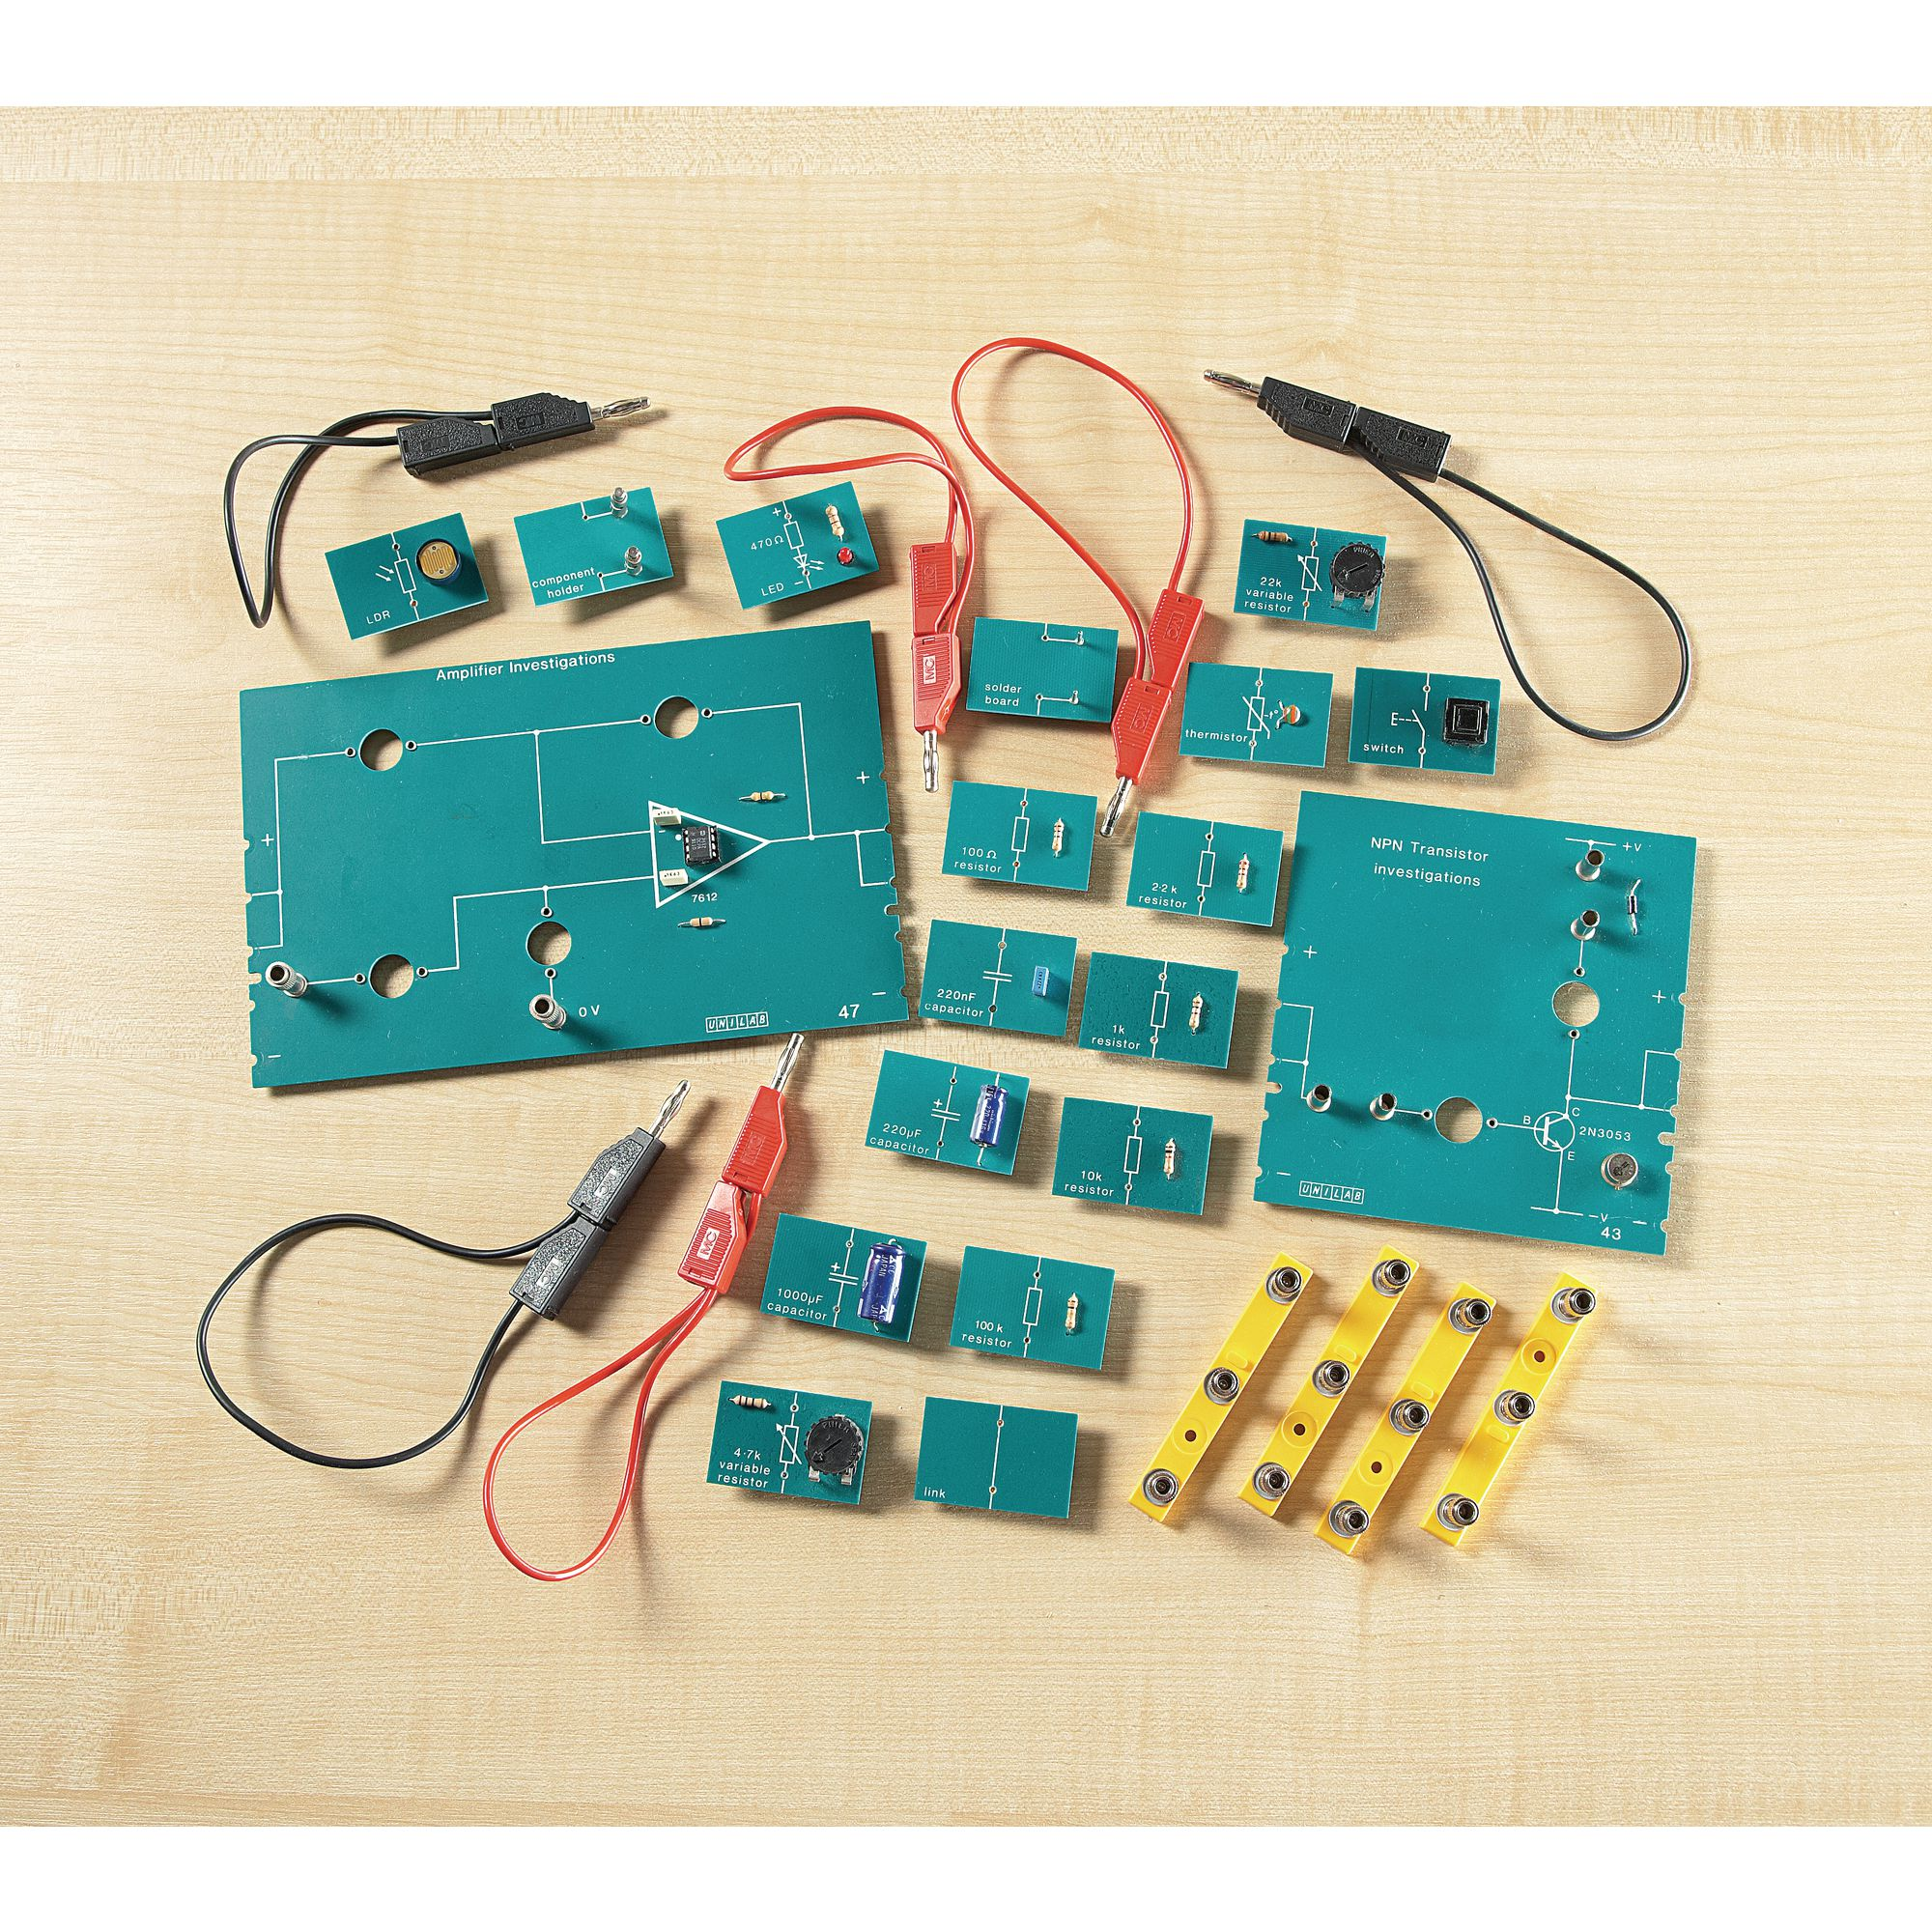 Physics Electricity And Magnetism Electronics Printed Circuit